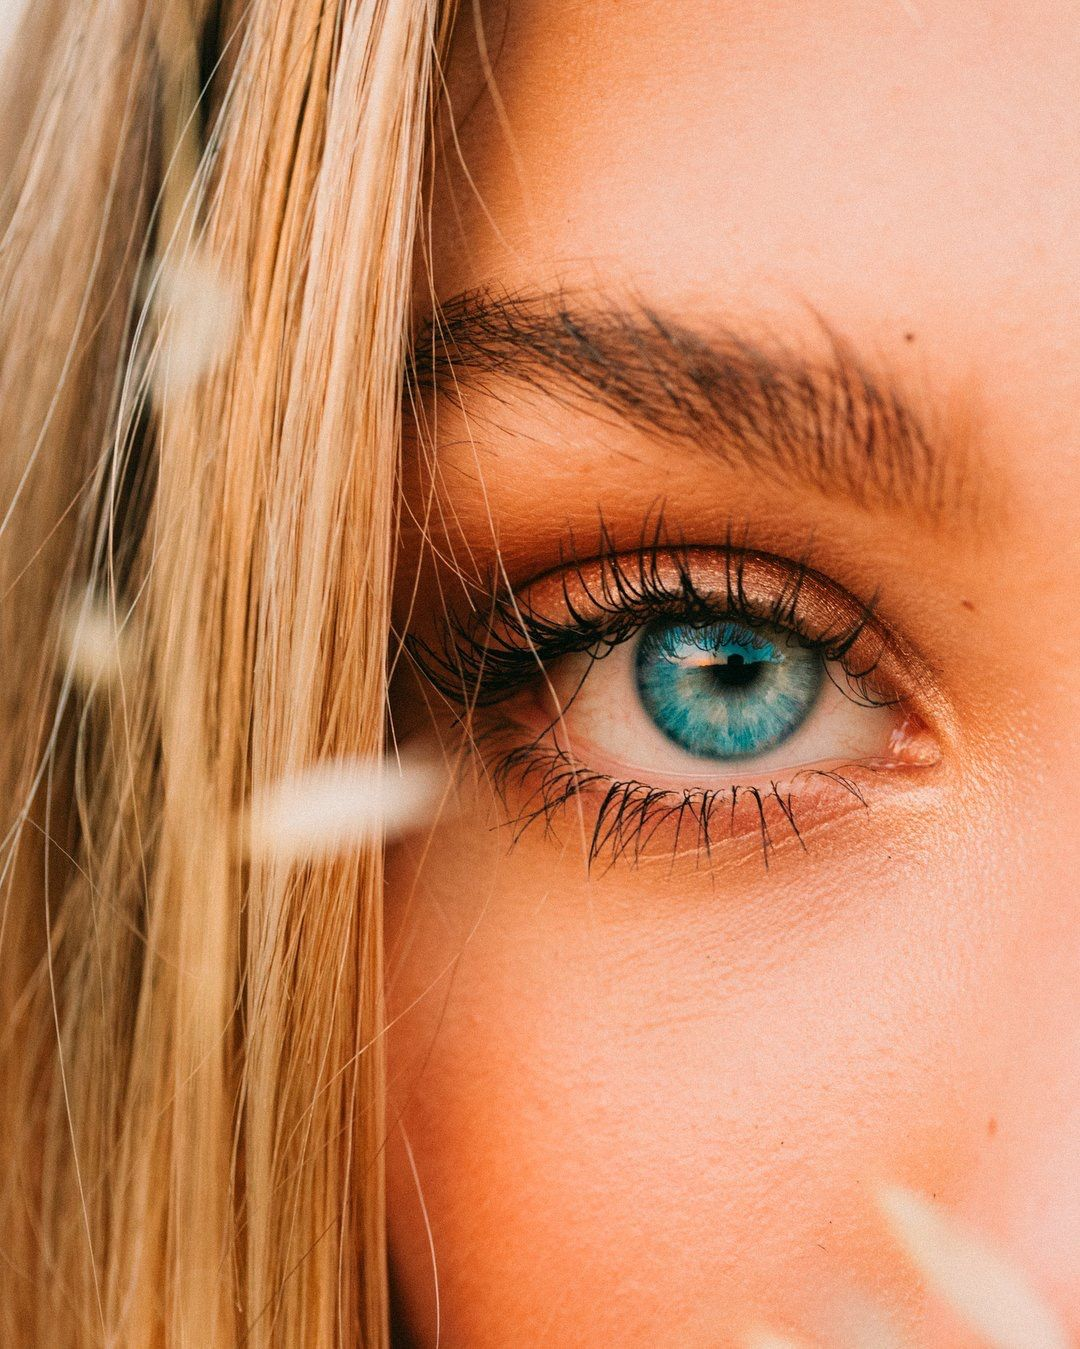 Pin By Private Info On Maddie Ziegler Brown Hair Blue Eyes Blue Eyes Aesthetic Light Blue Eyes